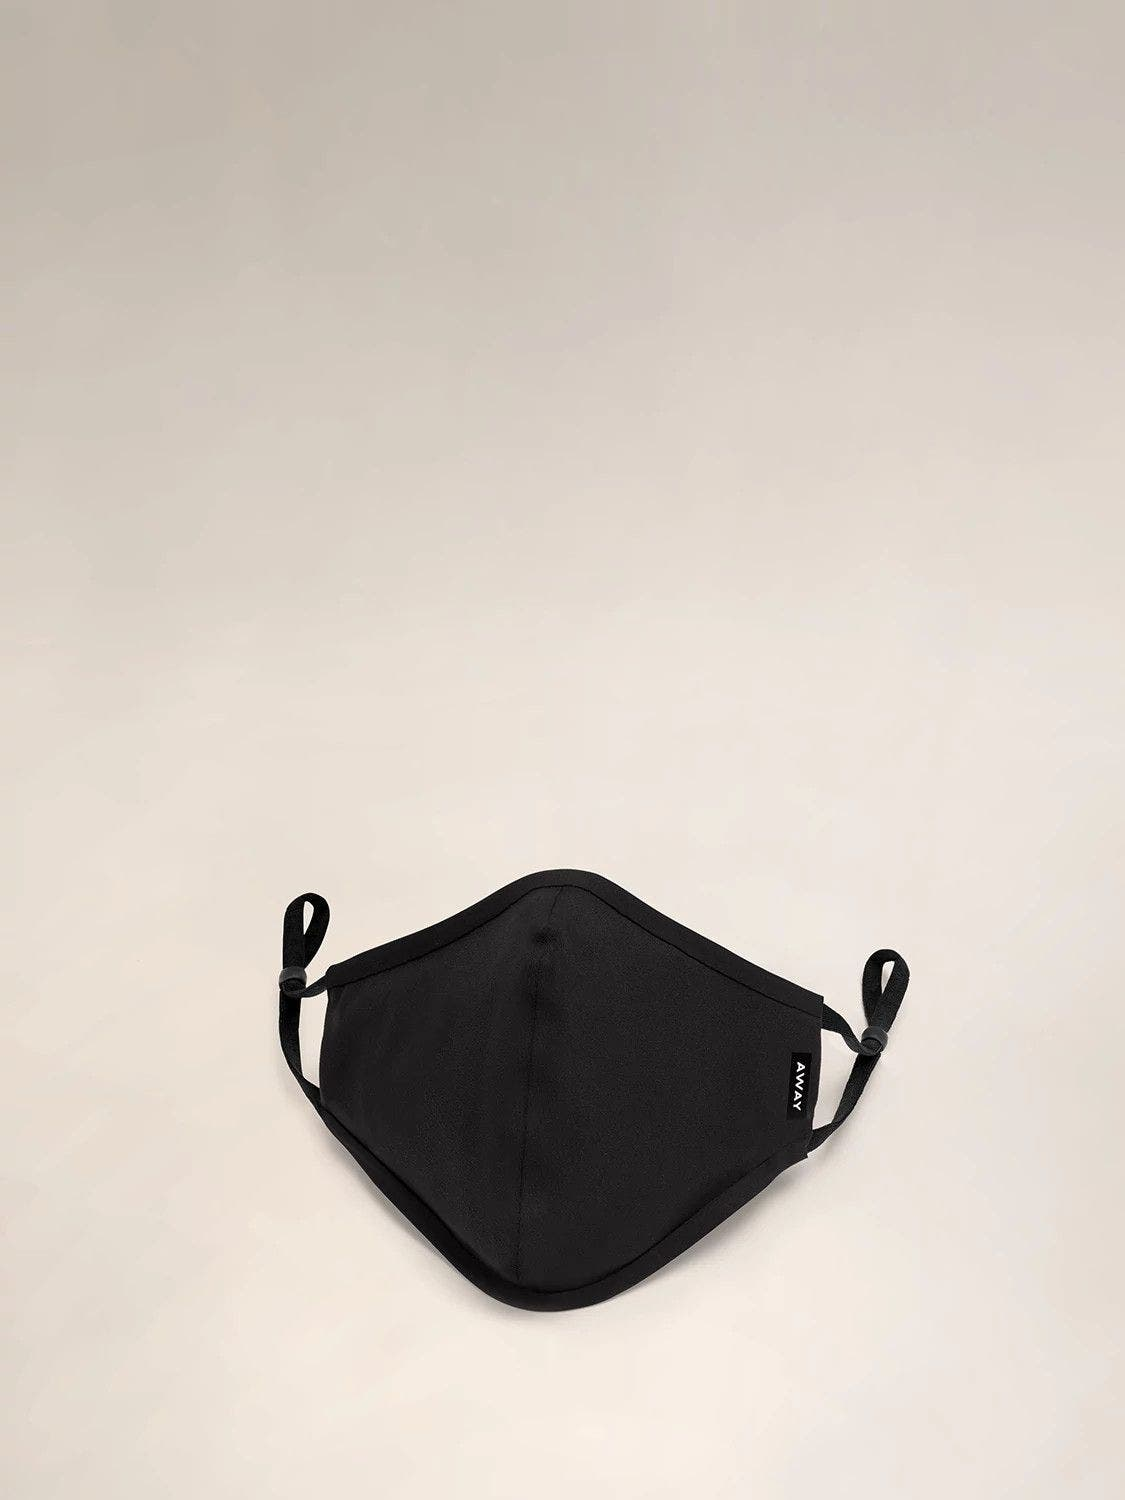 A front view of a black reusable cloth face mask with ear loops shown.